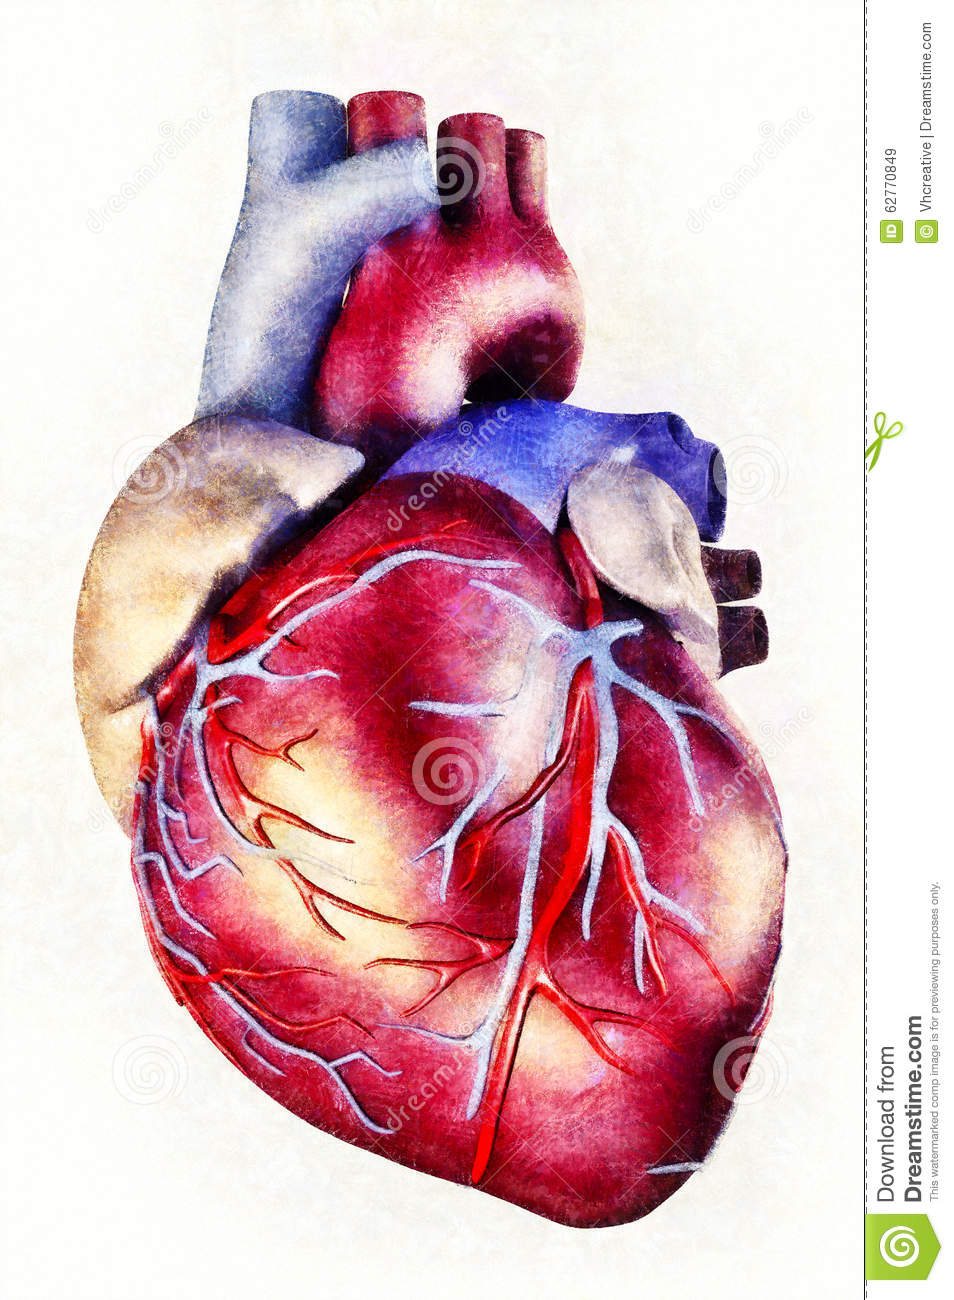 Human Heart Anatomy Illustration Stock Illustration Illustration